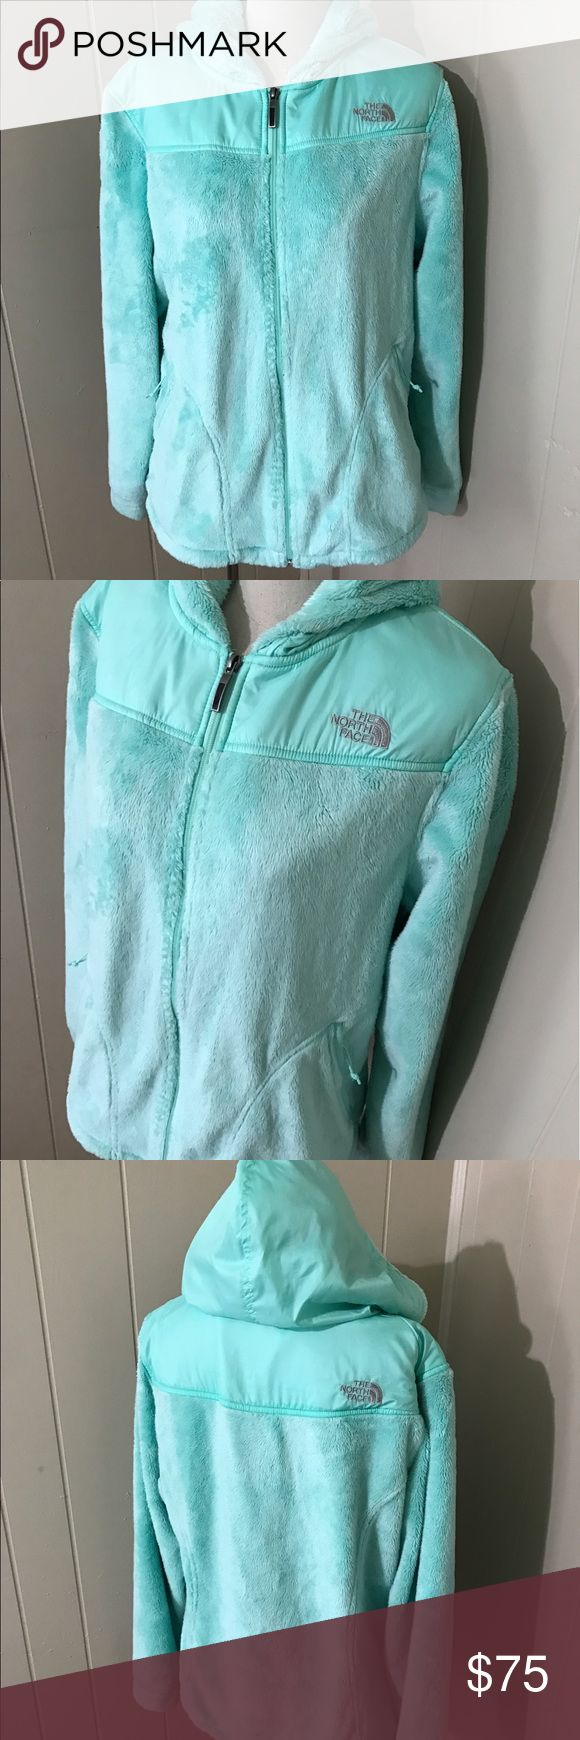 The north face mint green fleece Virtually new! The North Face Jackets & Coats